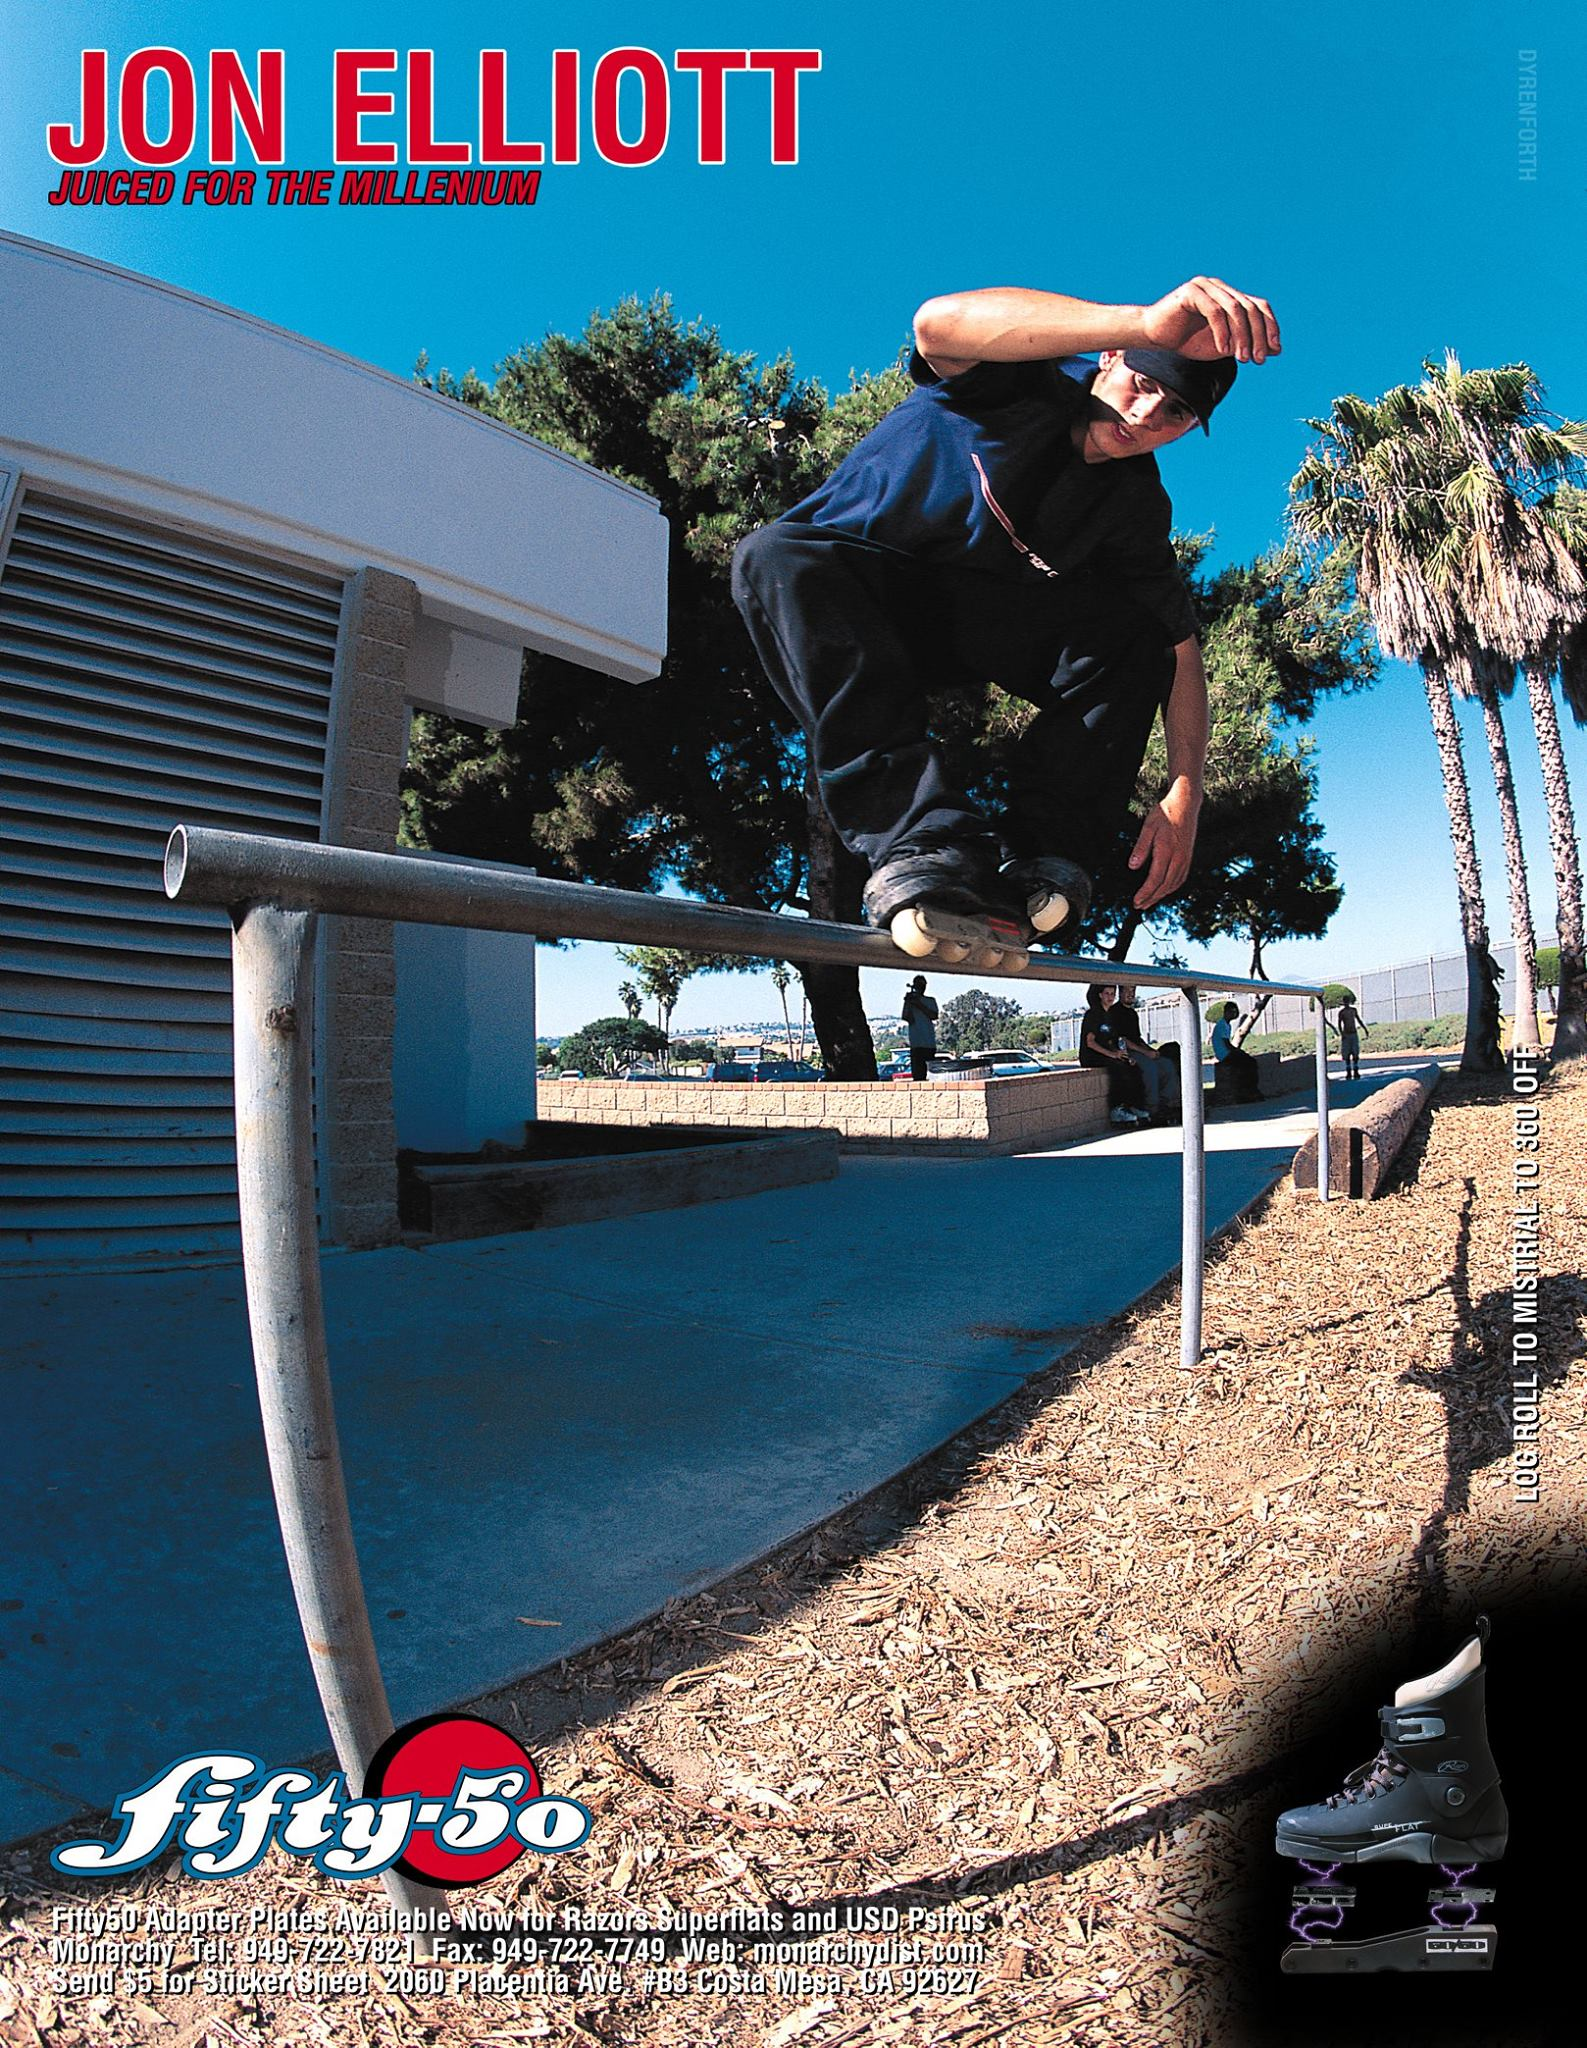 Jon Elliott was the first rider to test the 50/50 Razors adapter plates and provided a ton of feedback on how they could be improved. This ad with Jon ran in Daily Bread issue 33 around Winter 1999.